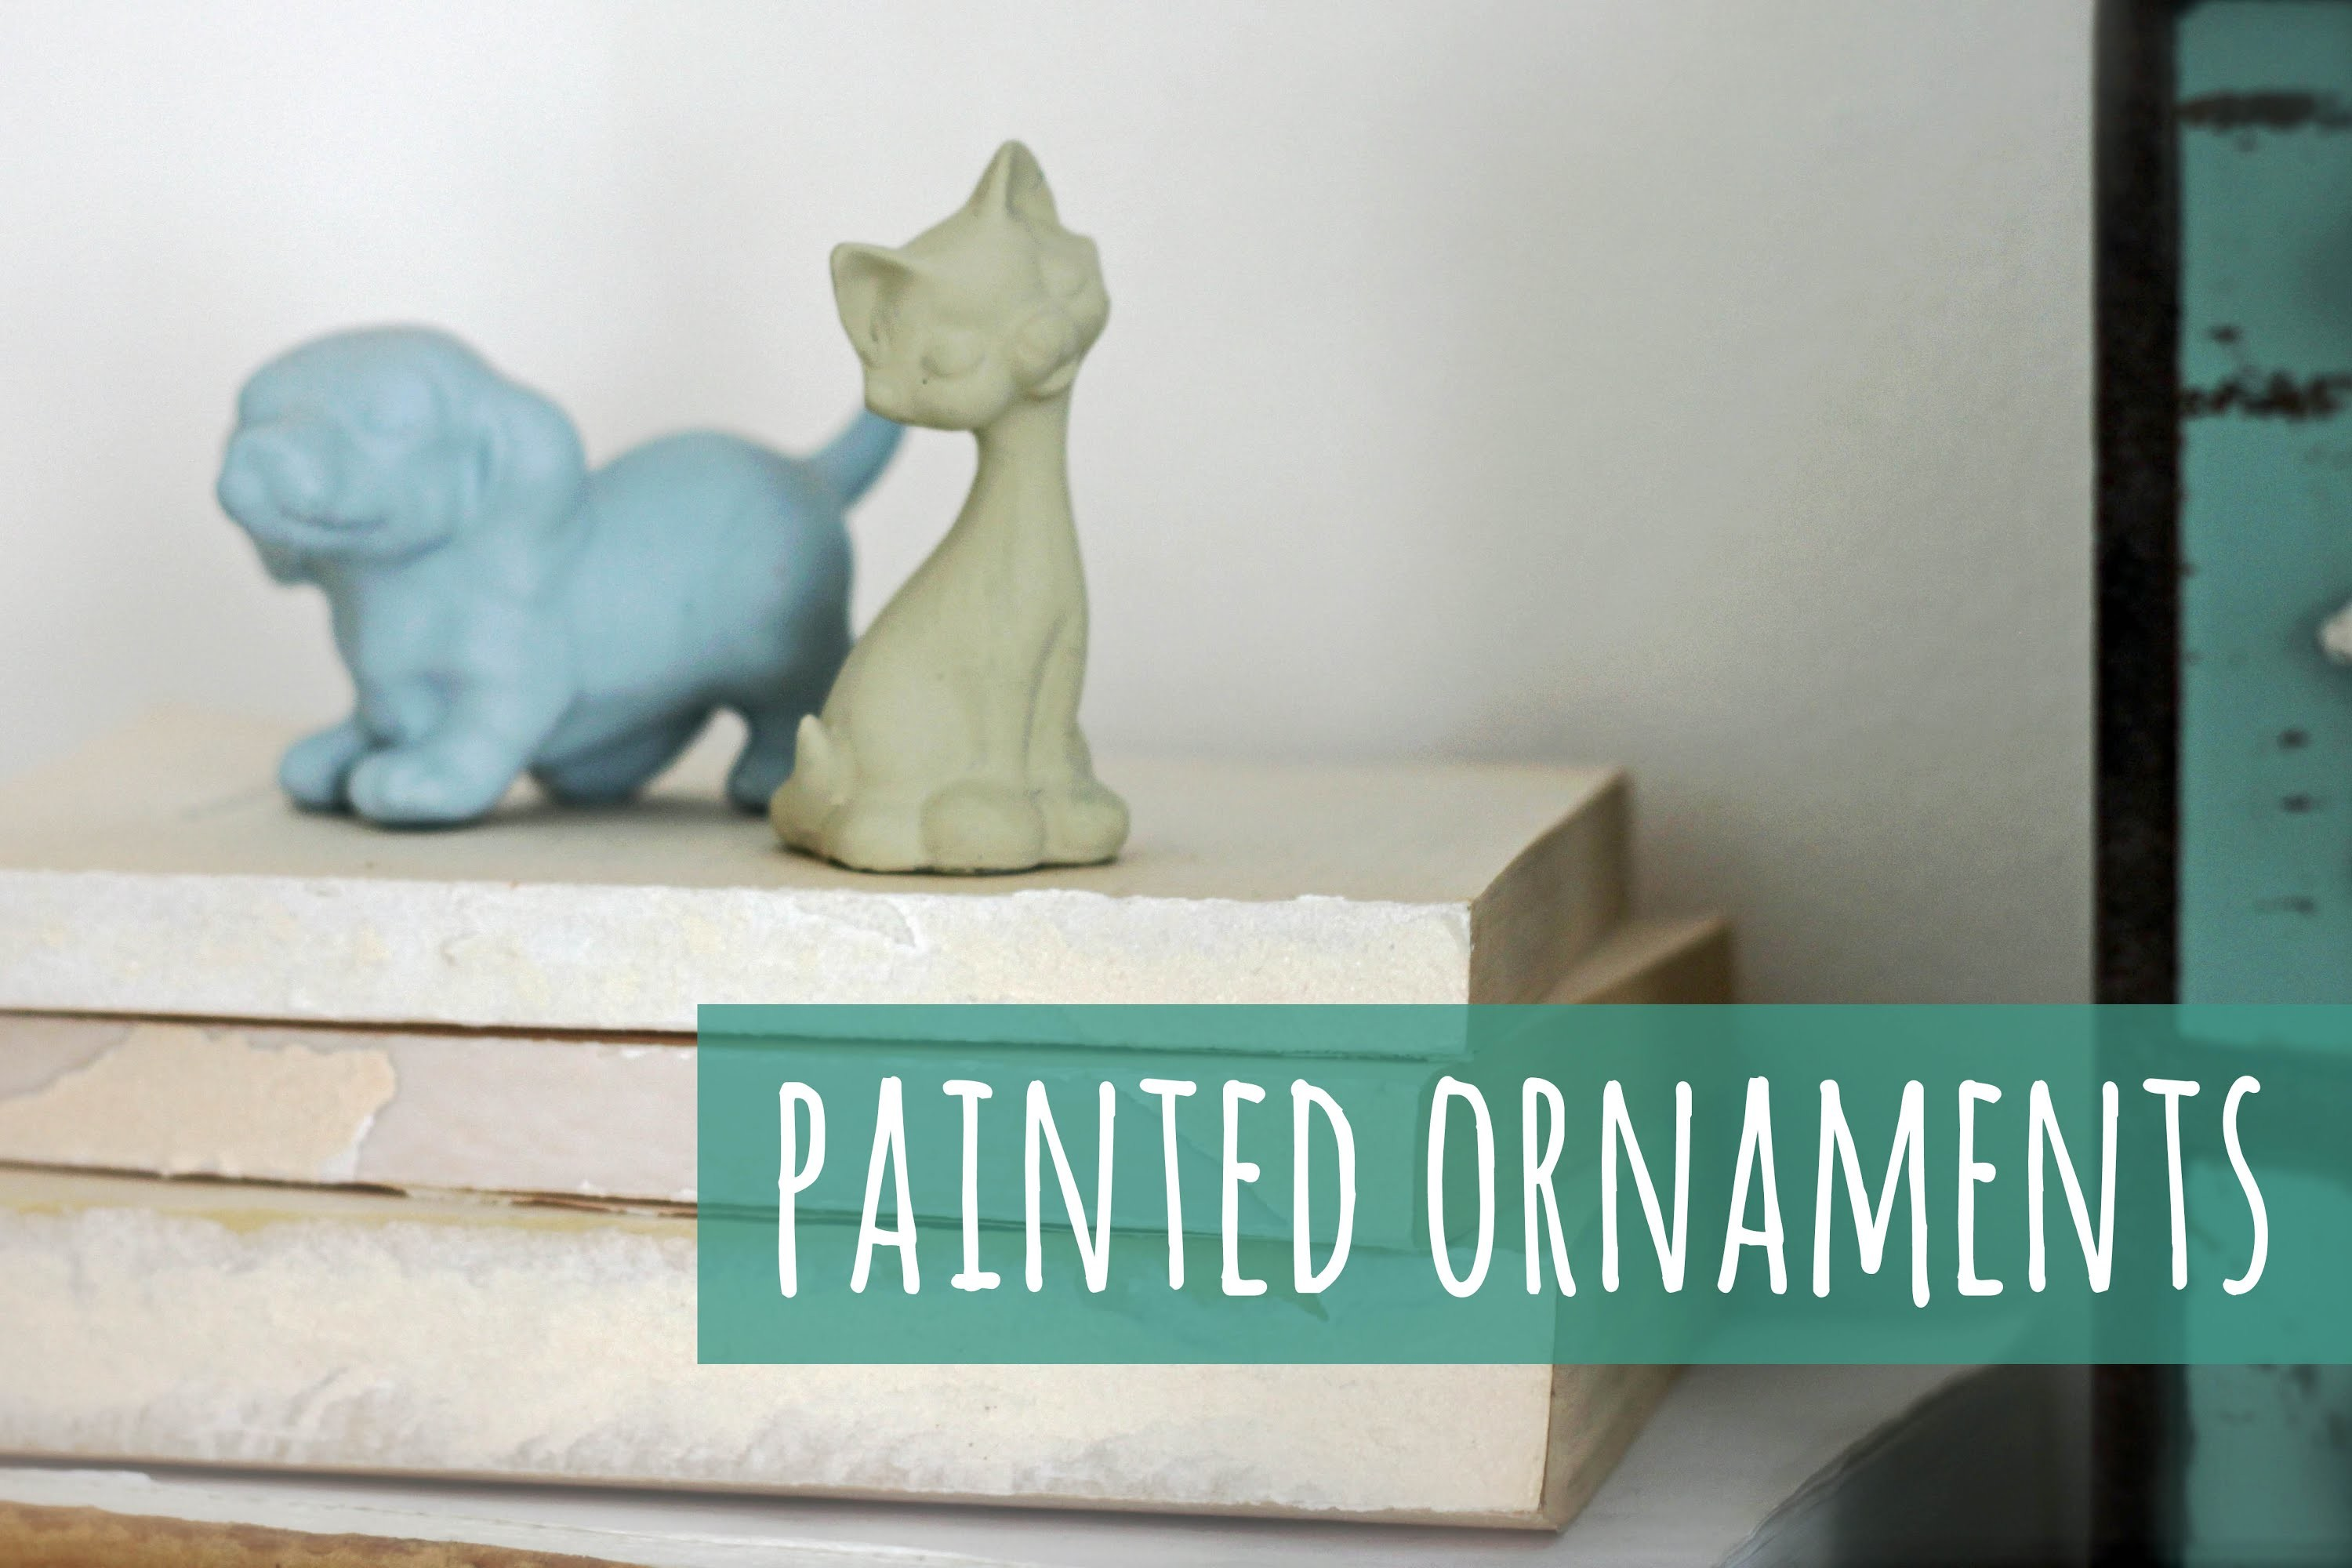 Give you figurines a makeover, painted ornaments tutorial